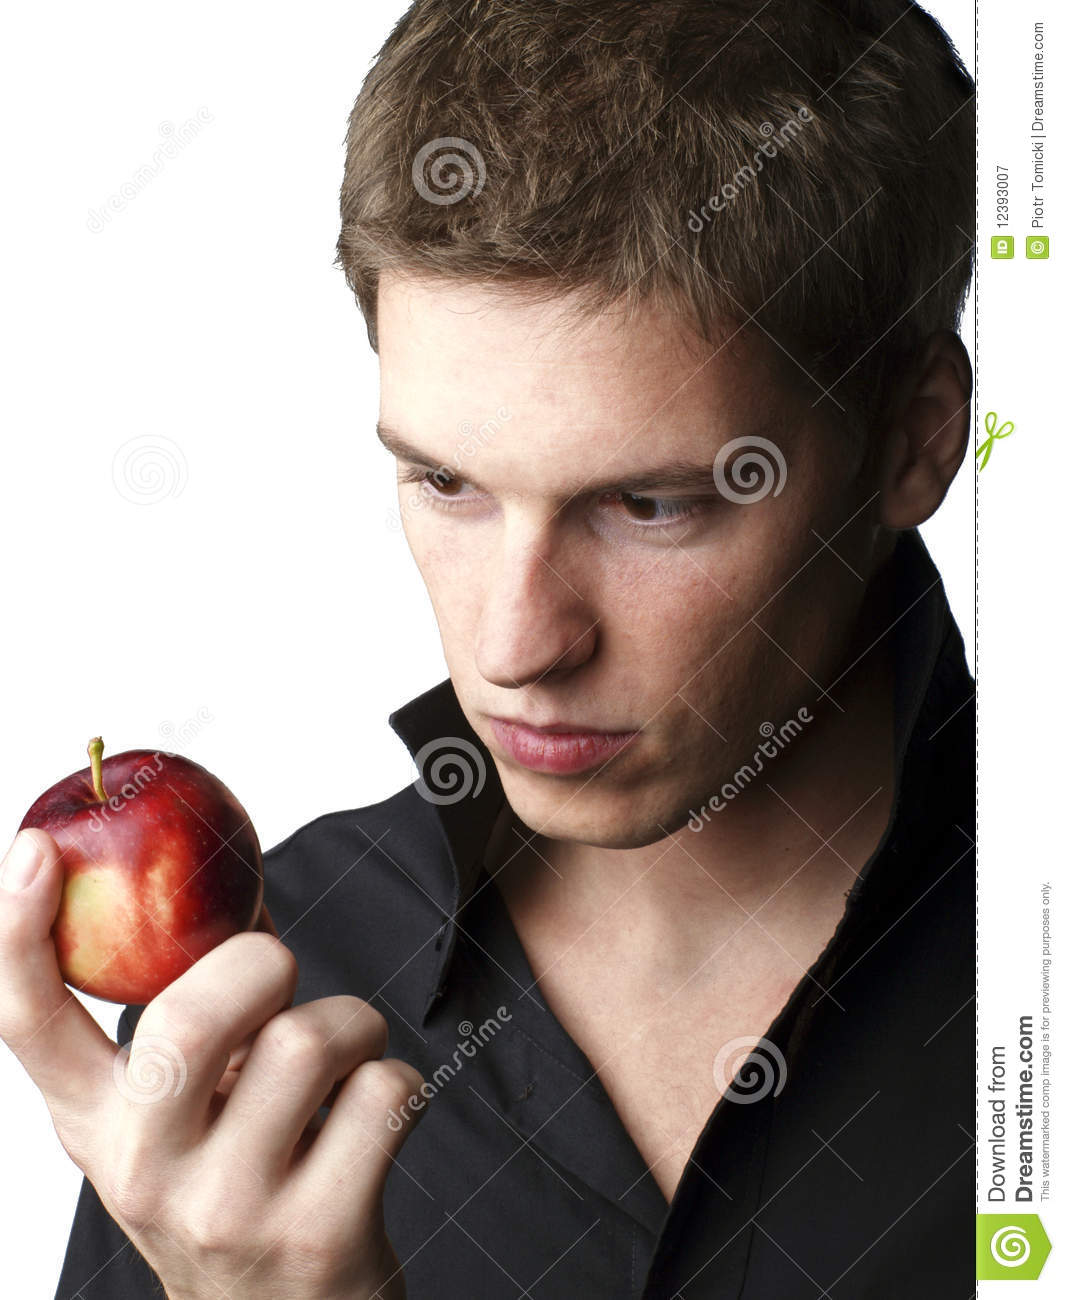 ... similar stock images of ` Handsome young male model holding an apple